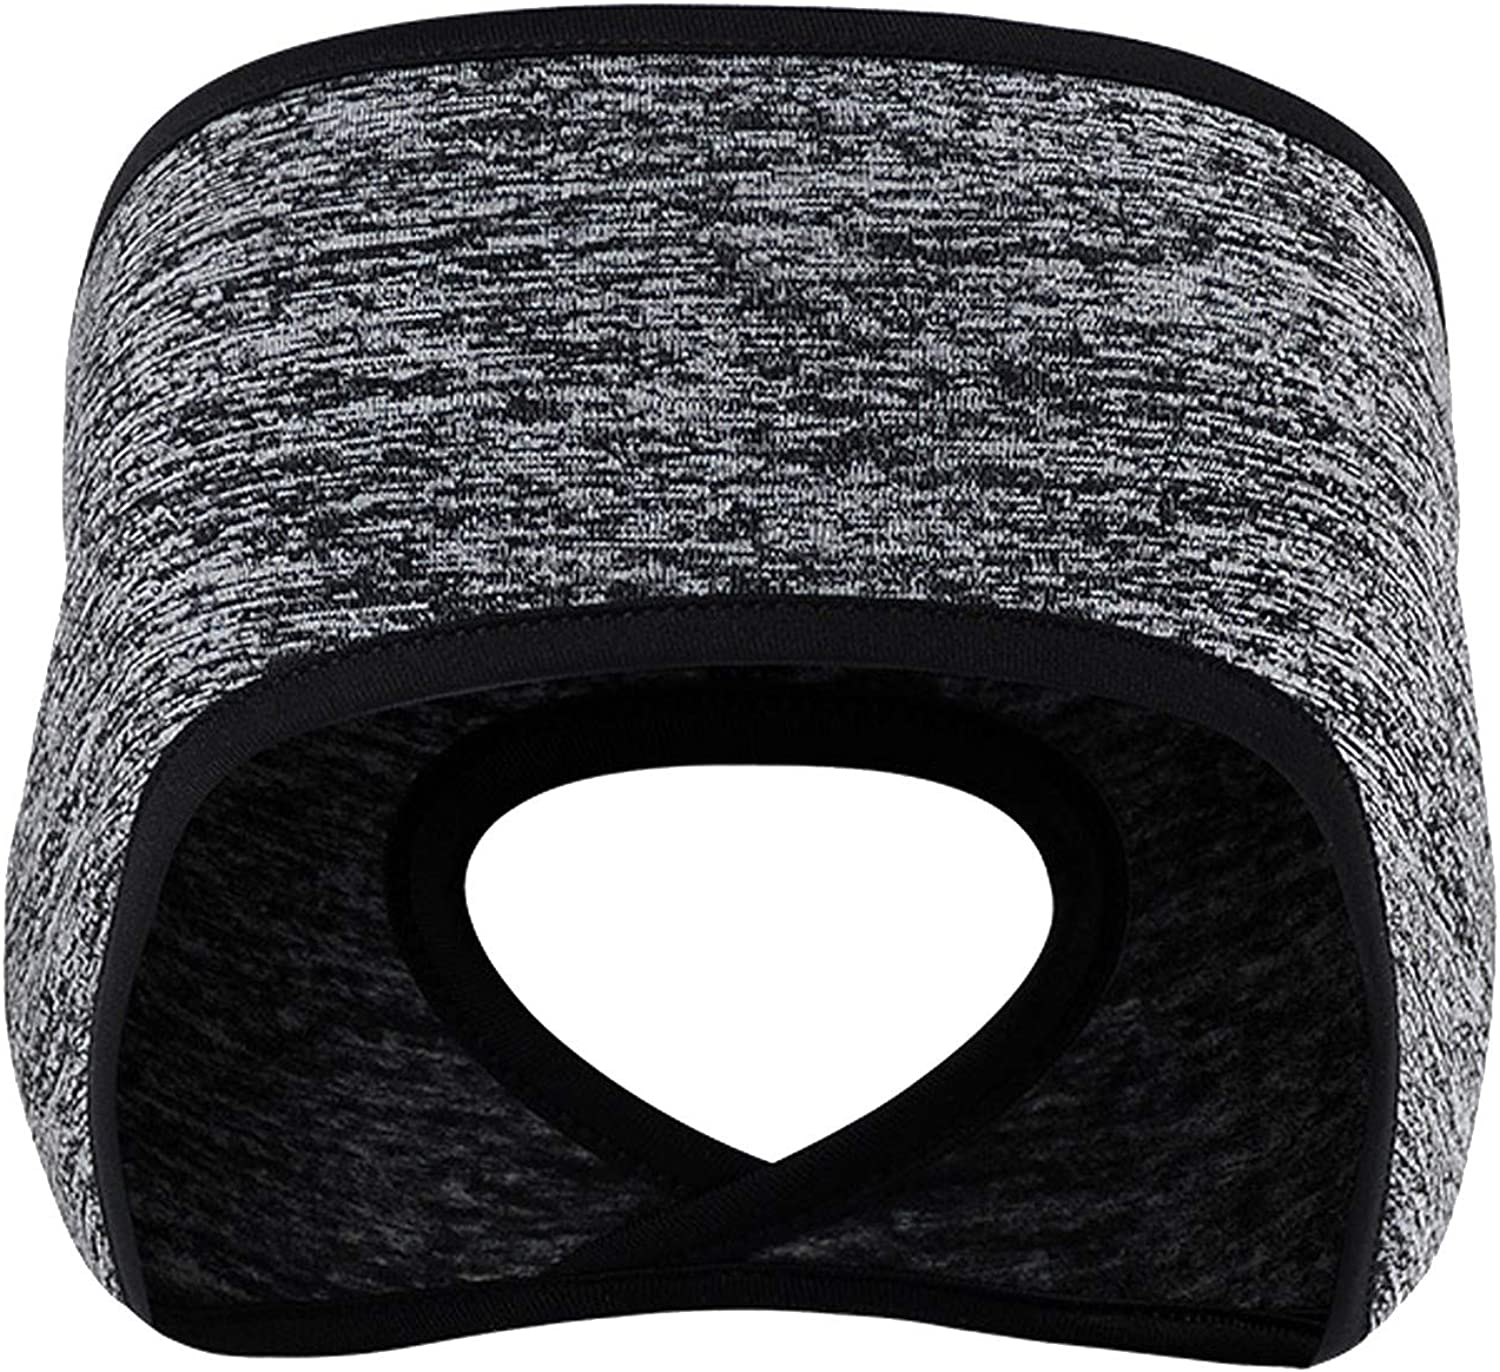 Winter Ear Warmers for Women Stretchy Elastic Earmuffs Ponytail Headband for Cold Thermal Workout Running Cycling